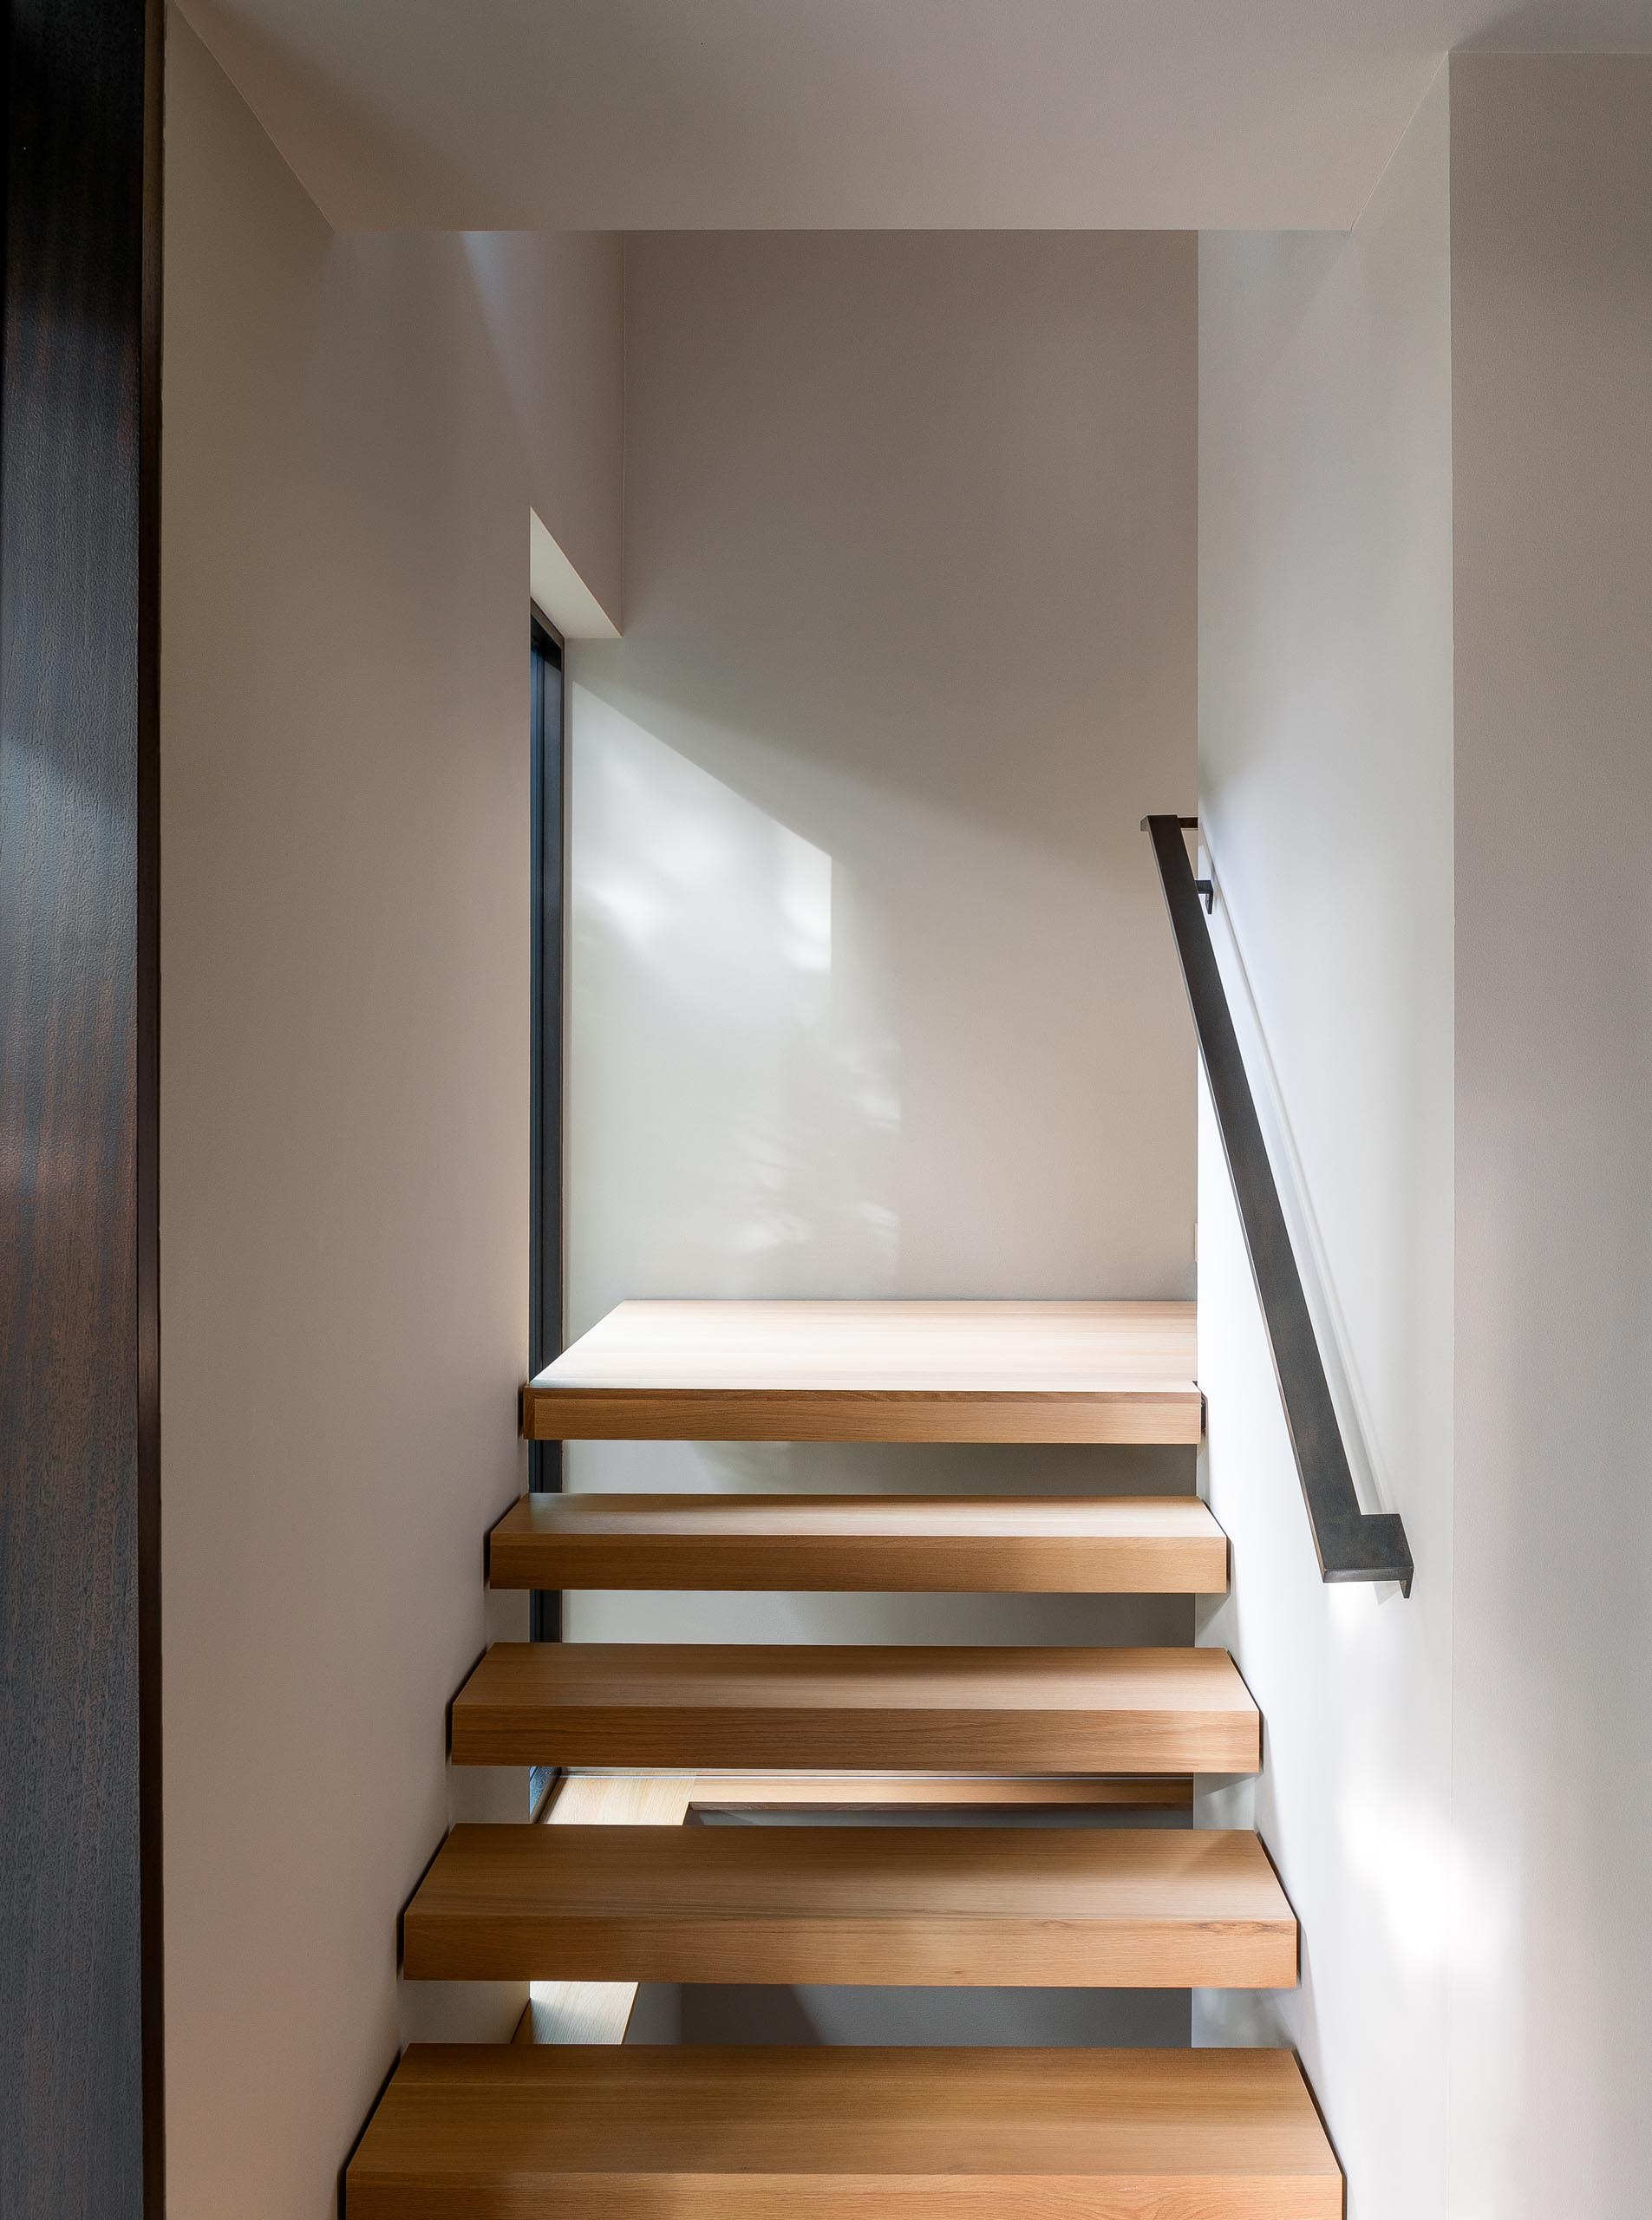 Wood stairs connect the upper social areas of this modern home with the bedrooms and bathrooms that are located on the lower level.